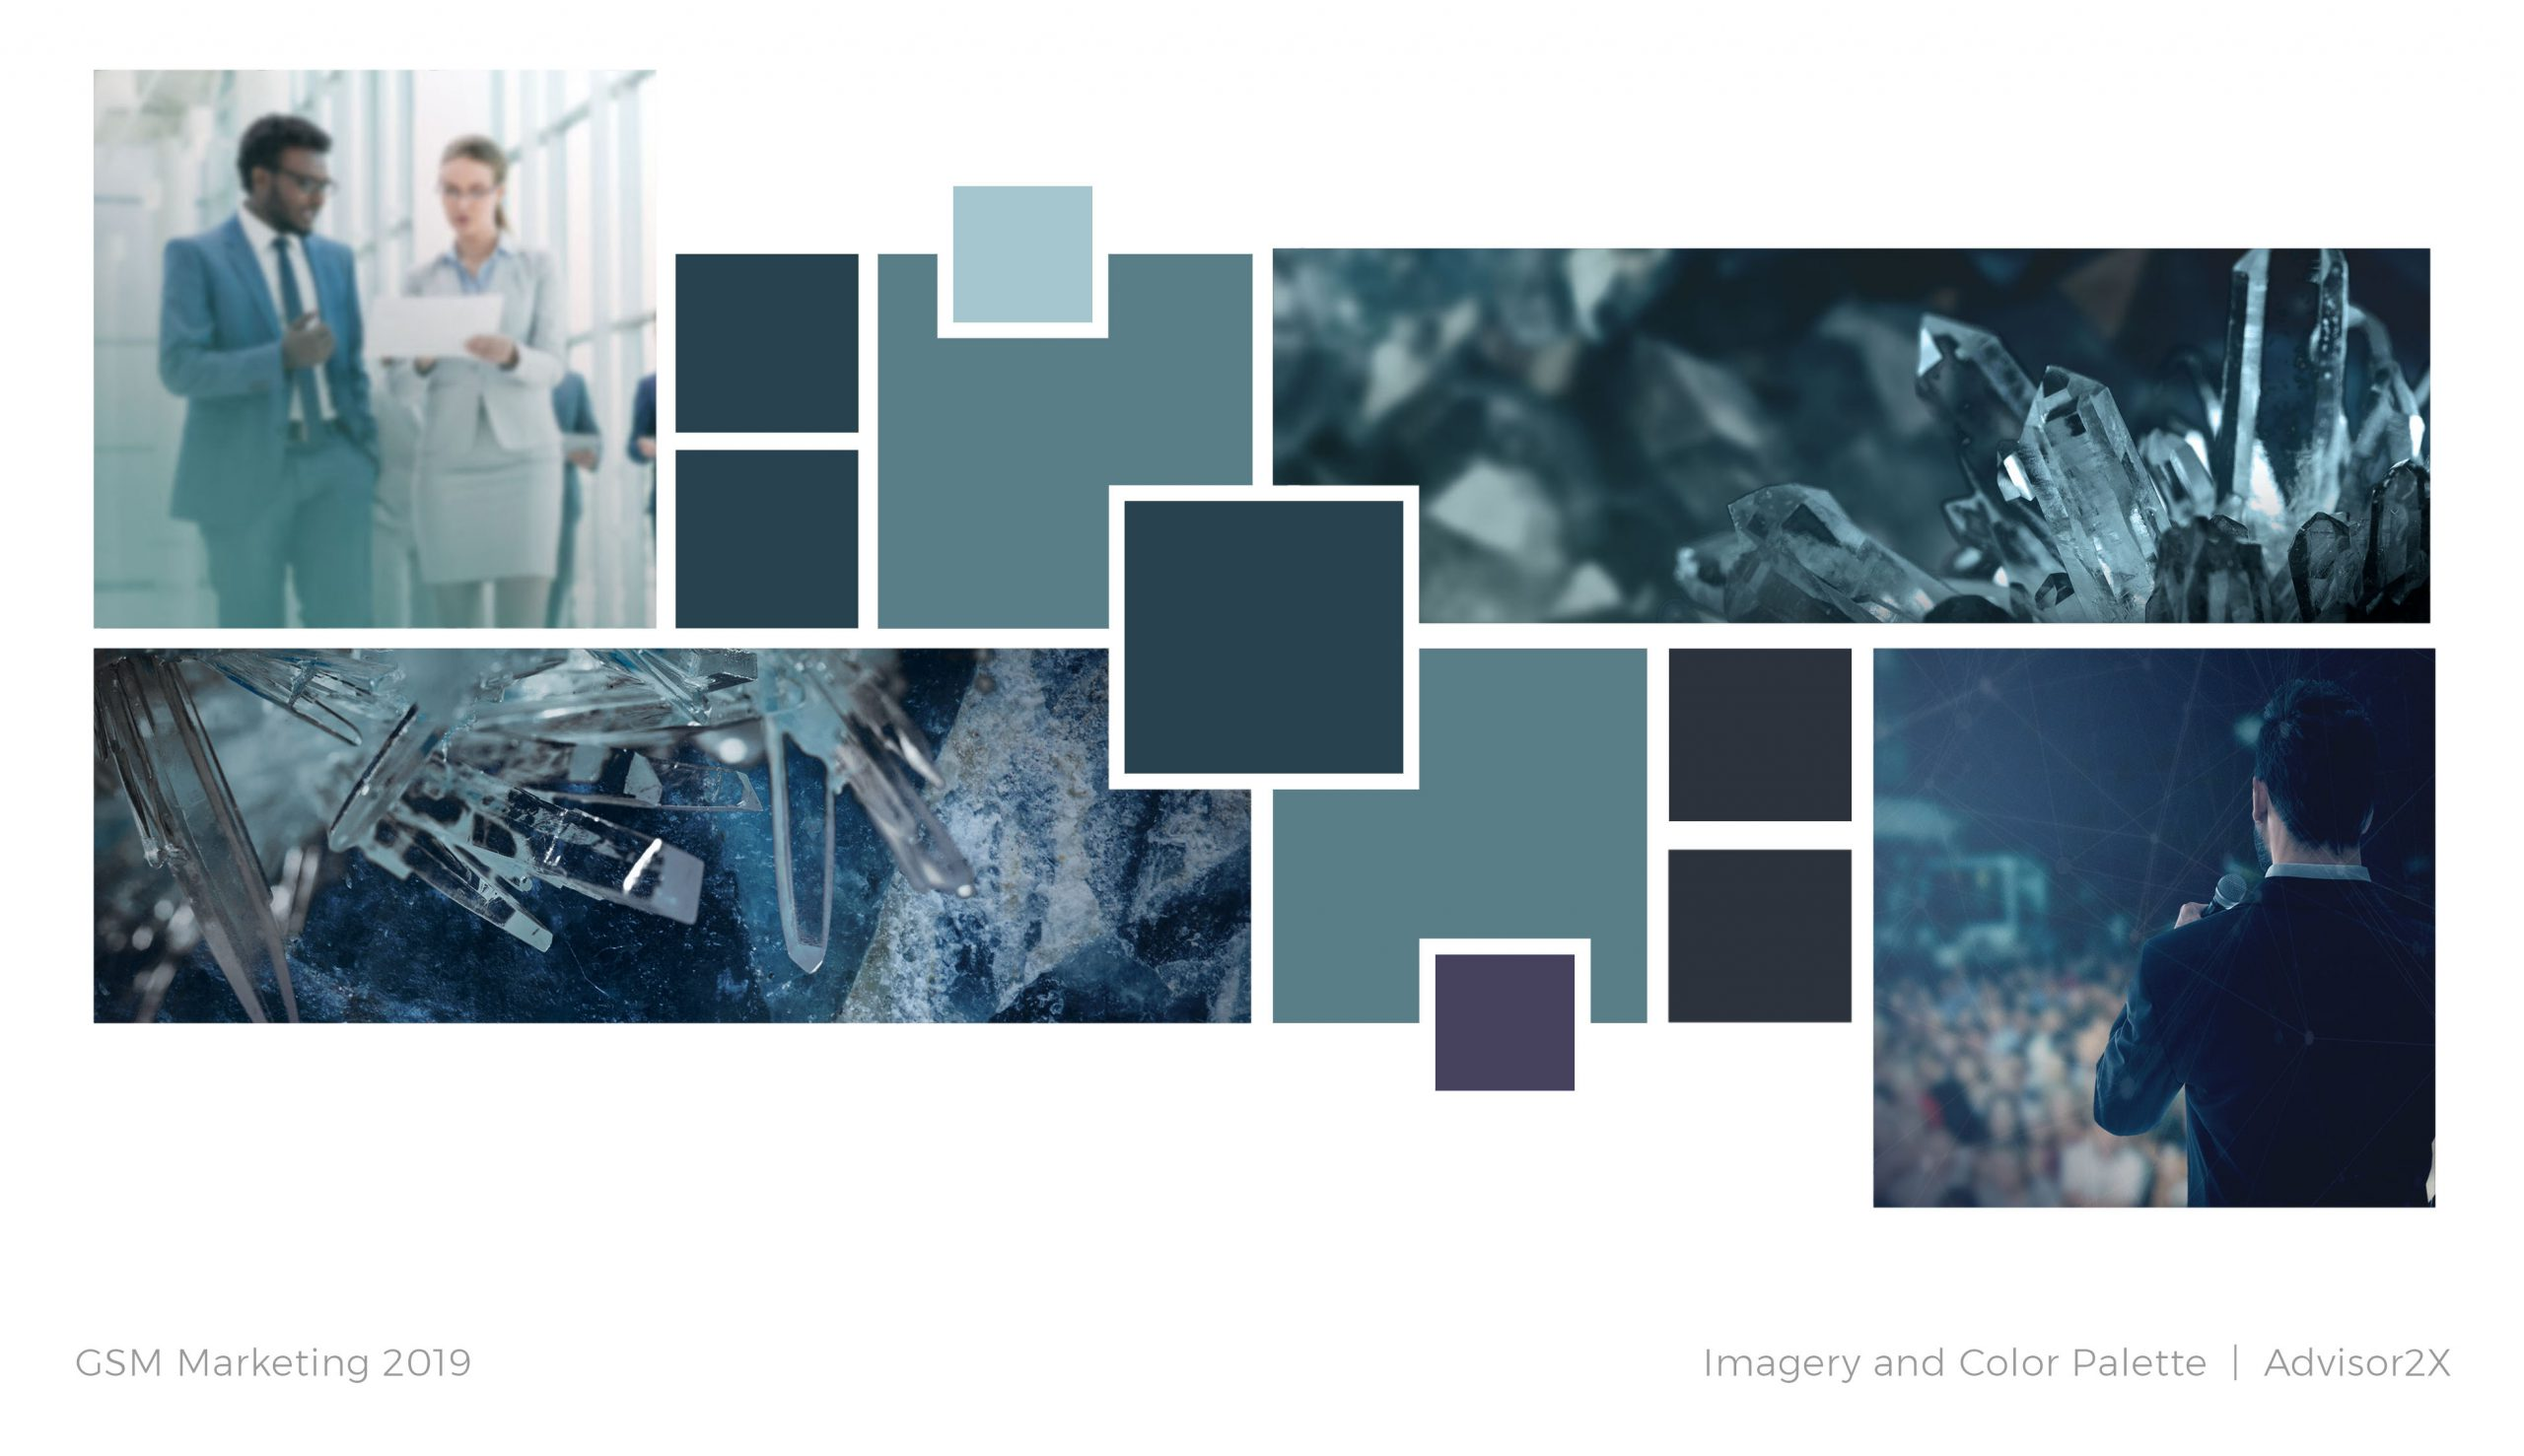 Advisor2X brand imagery and color palette plan